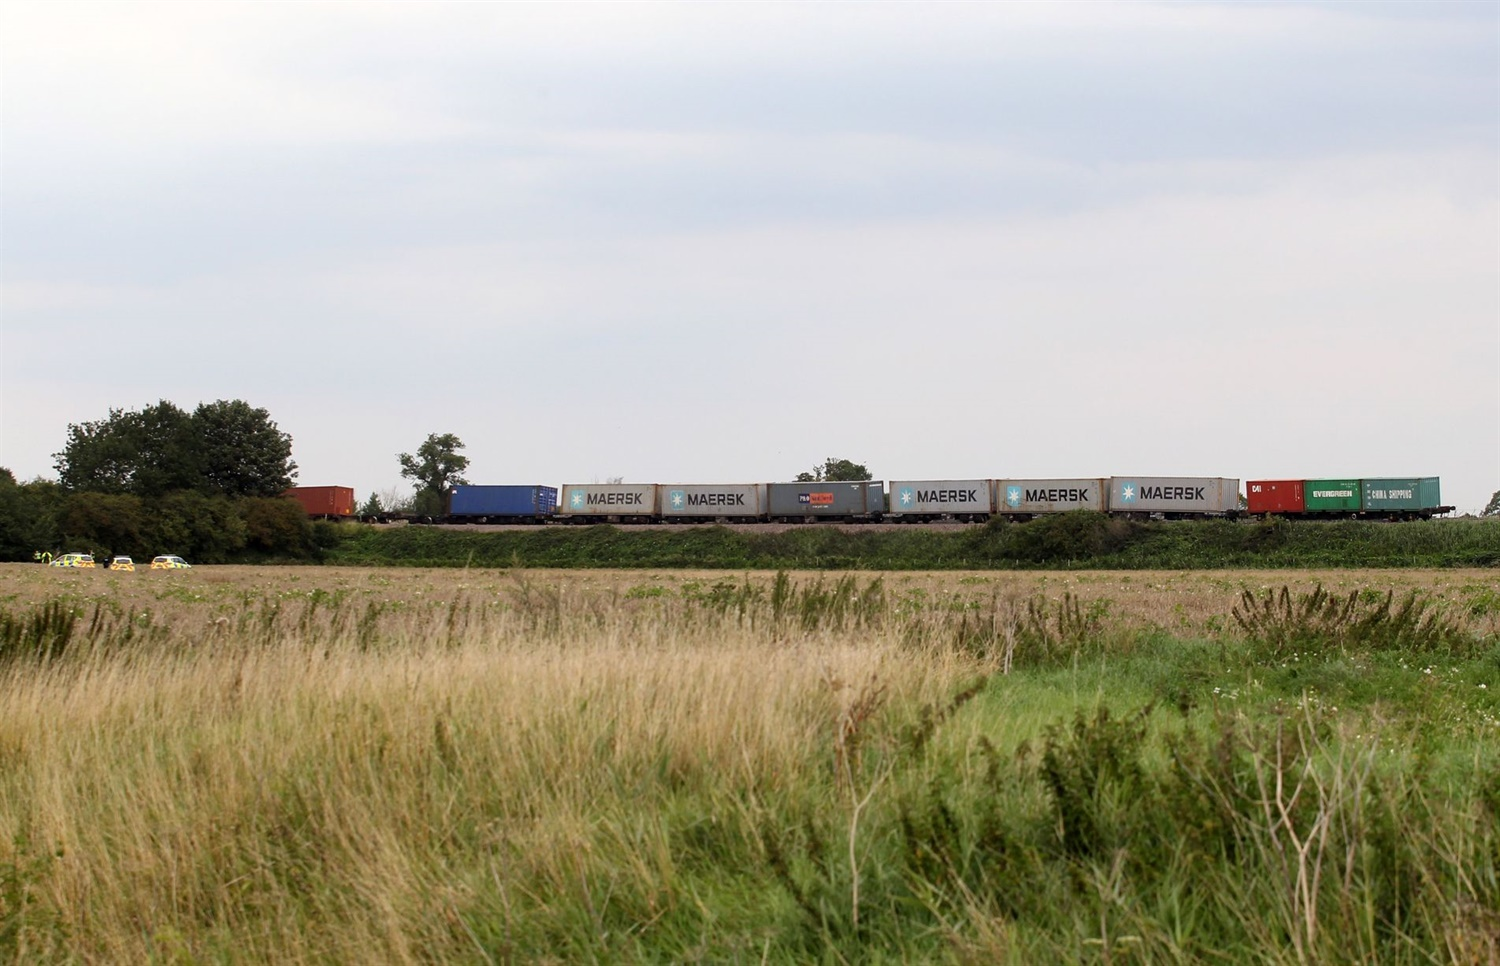 Freight train derails at Ely